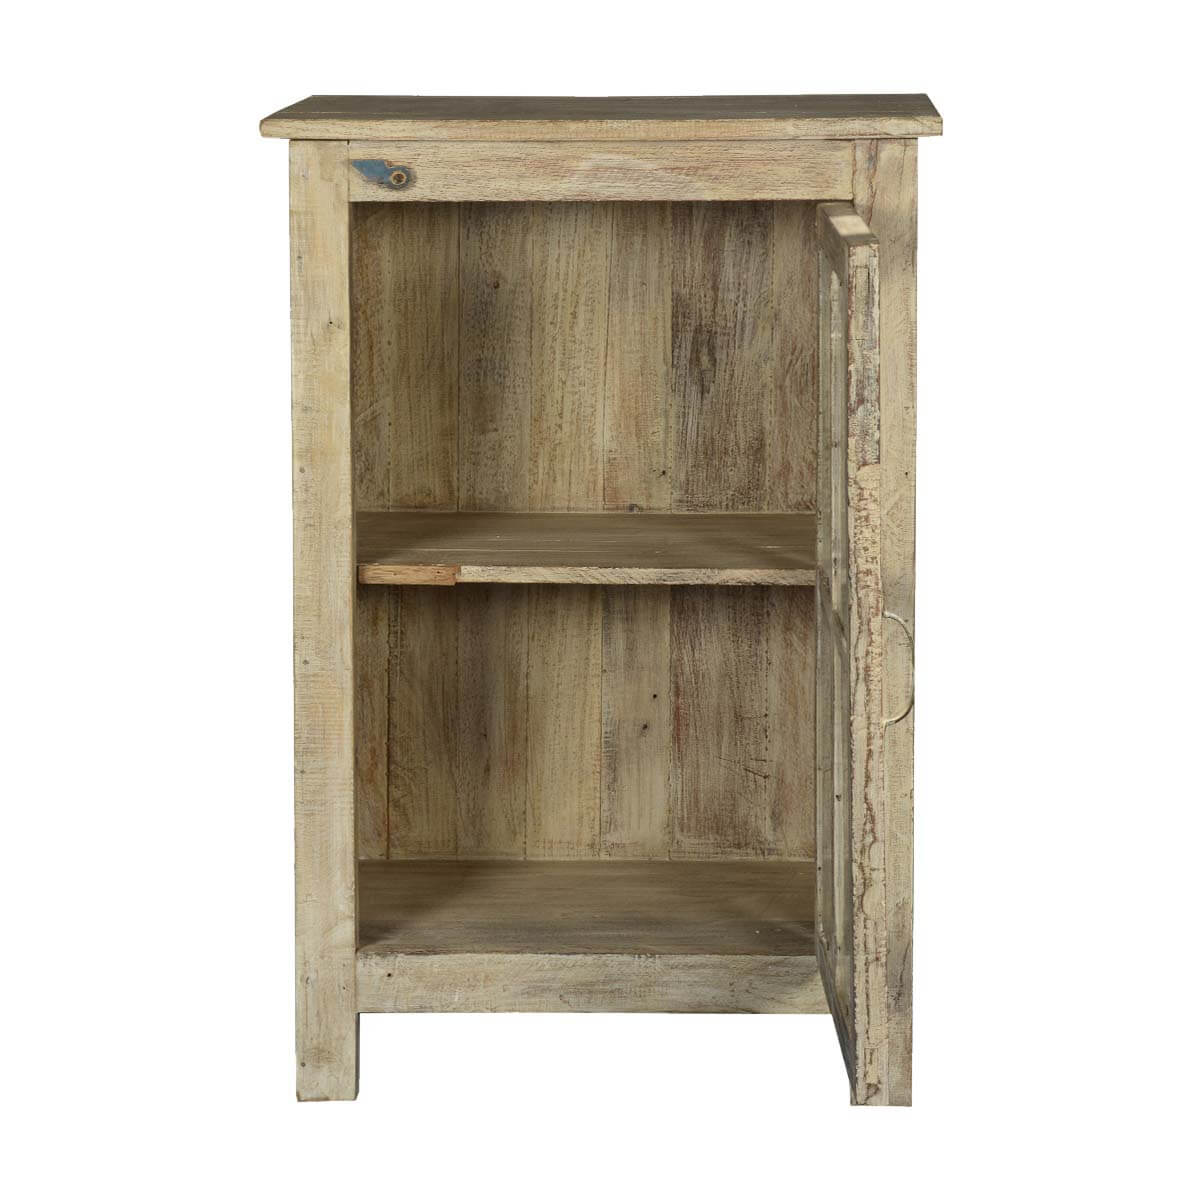 Scandinavian Furniture Metairie ... Traditional Side Tables And. on scandinavia furniture new orleans